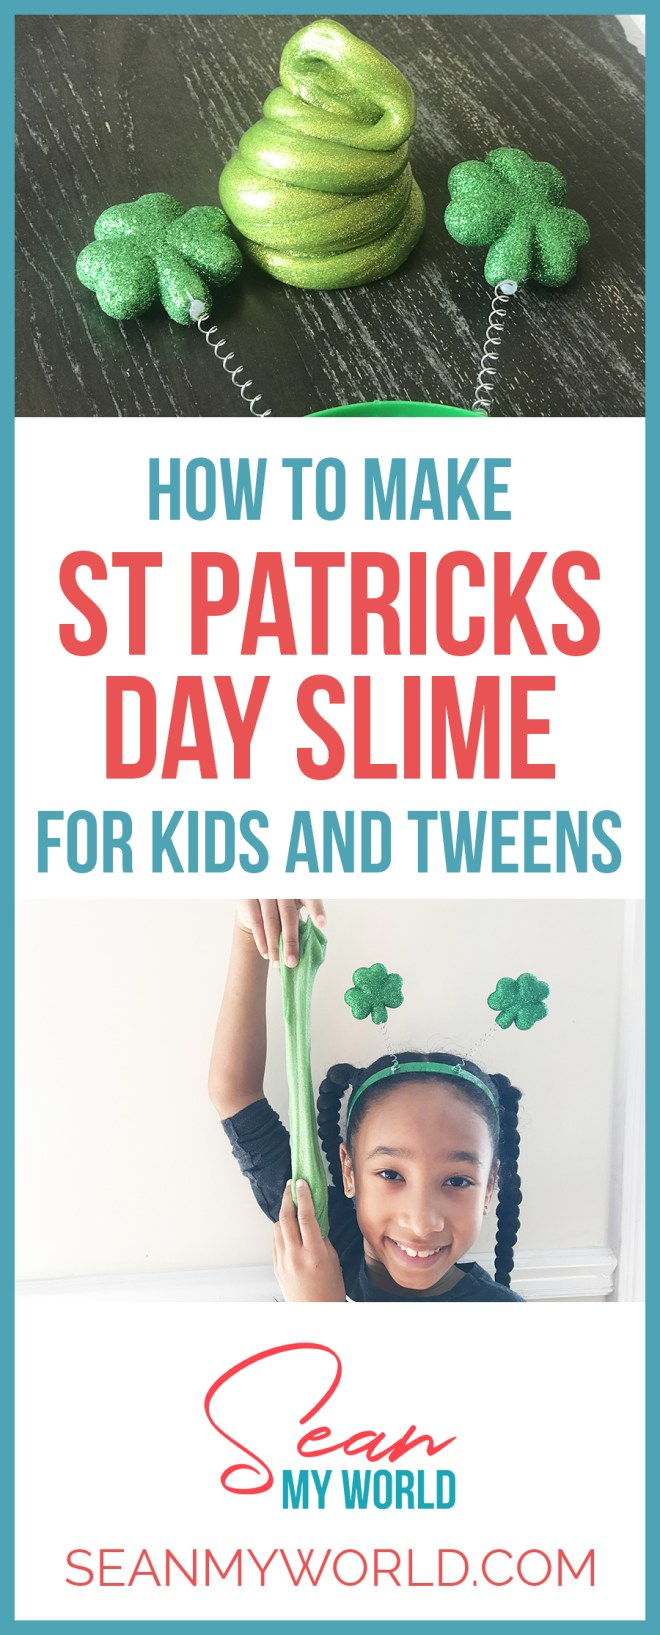 We're making a gold and green DIY glitter slime for Saint Patricks Day! Want to learn how to make glitter slime? Then watch this video.